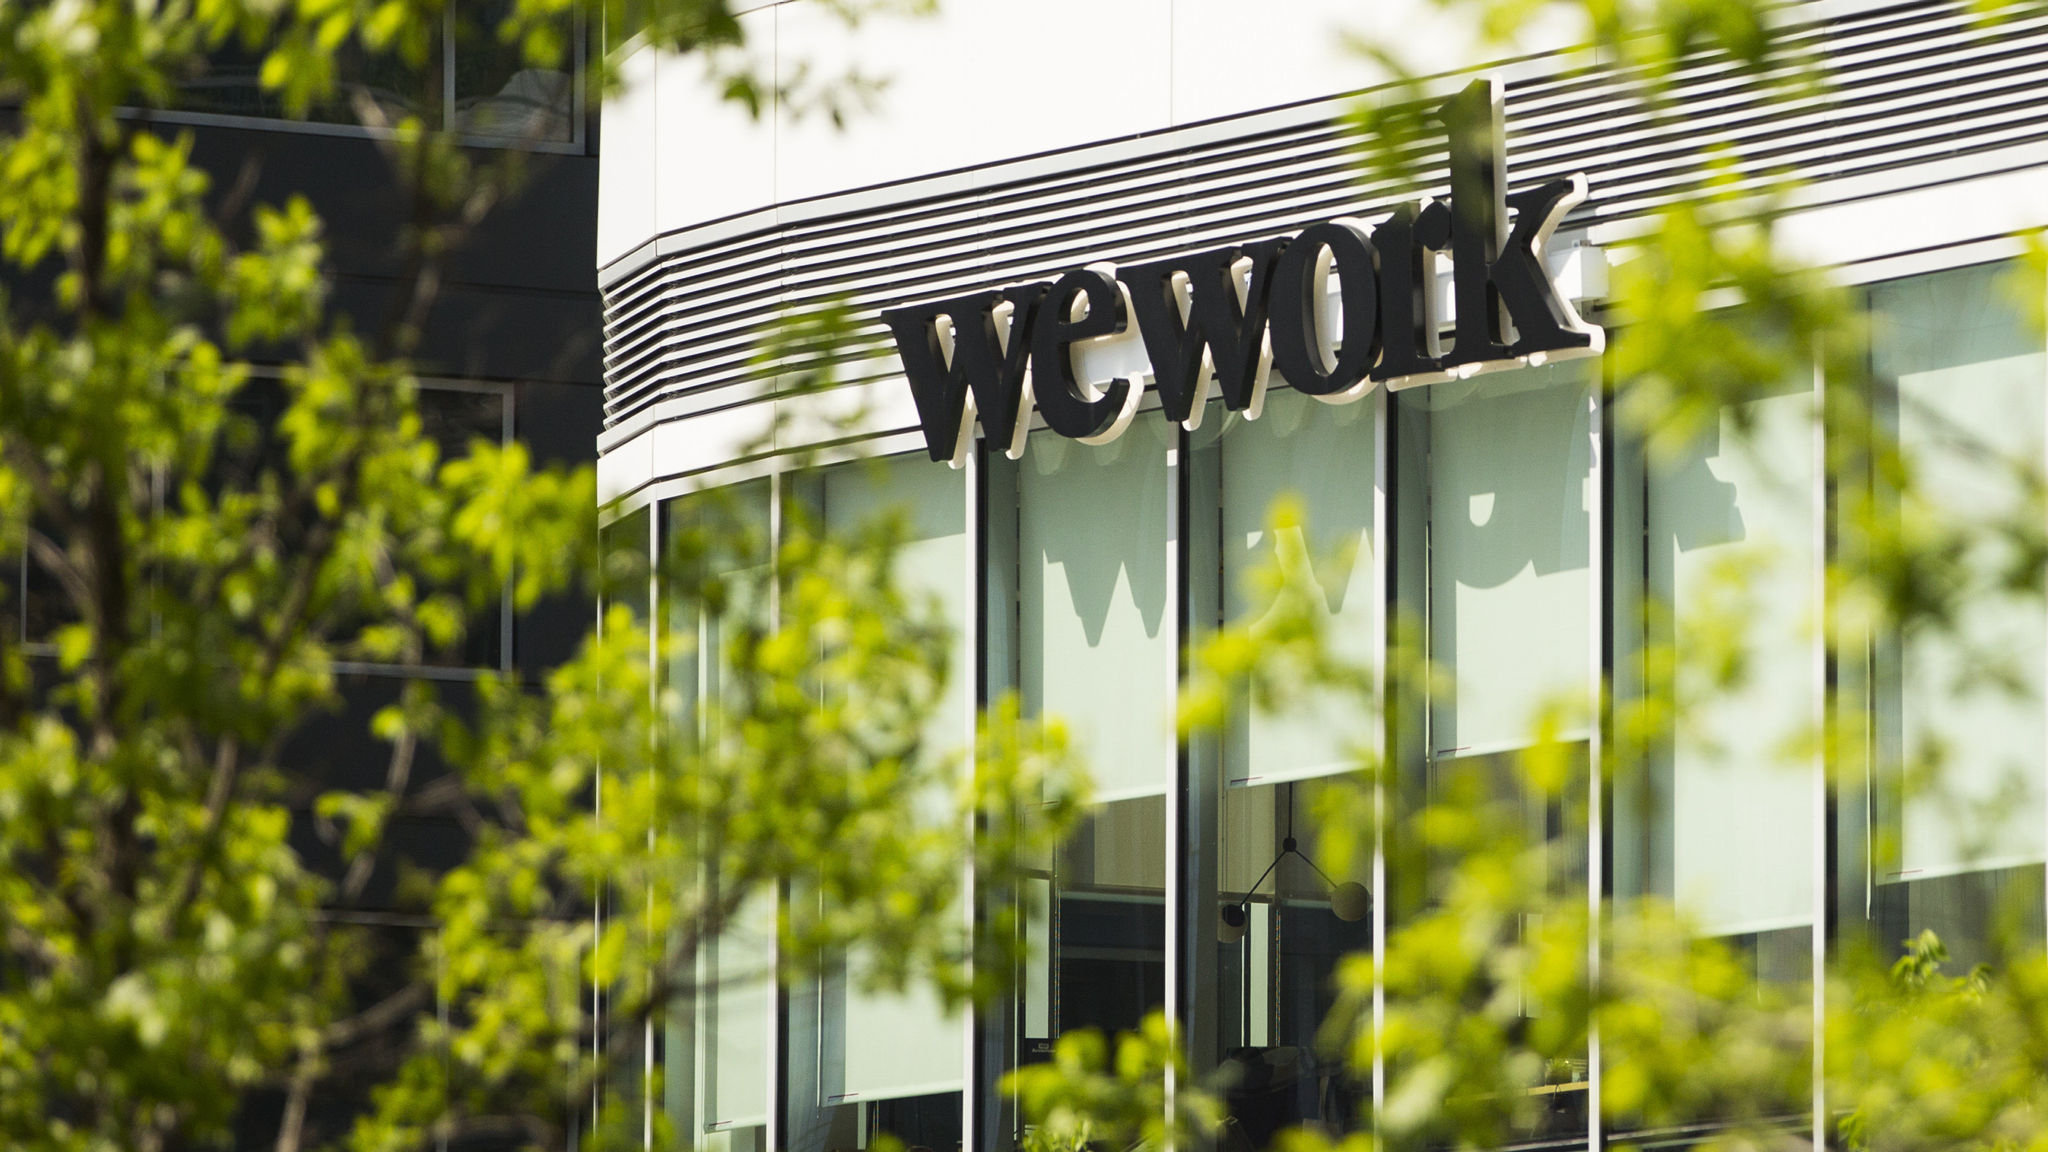 HSBC becomes one of WeWork's biggest tenants | Financial Times